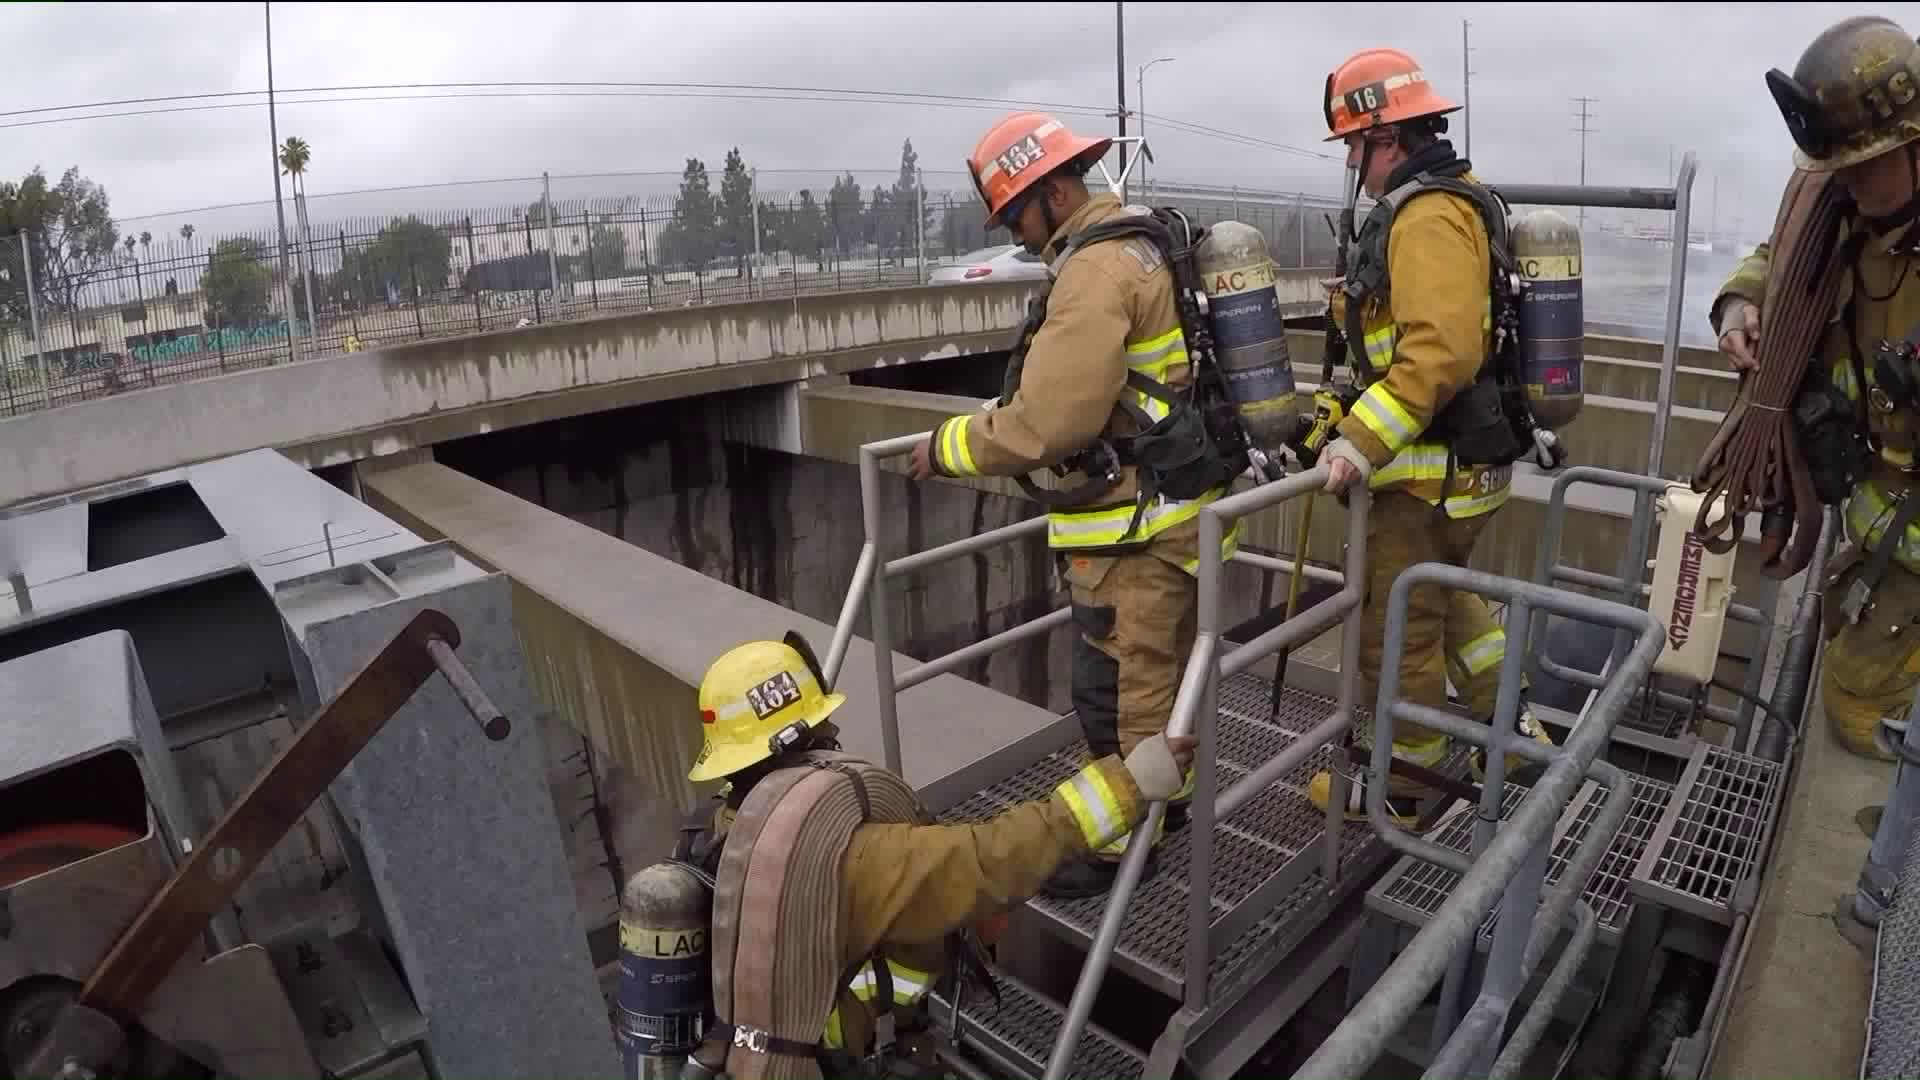 Firefighters from throughout Los Angeles County took part in emergency response training along the Alameda Corridor in Vernon on May 19, 2019. (Credit: KTLA)